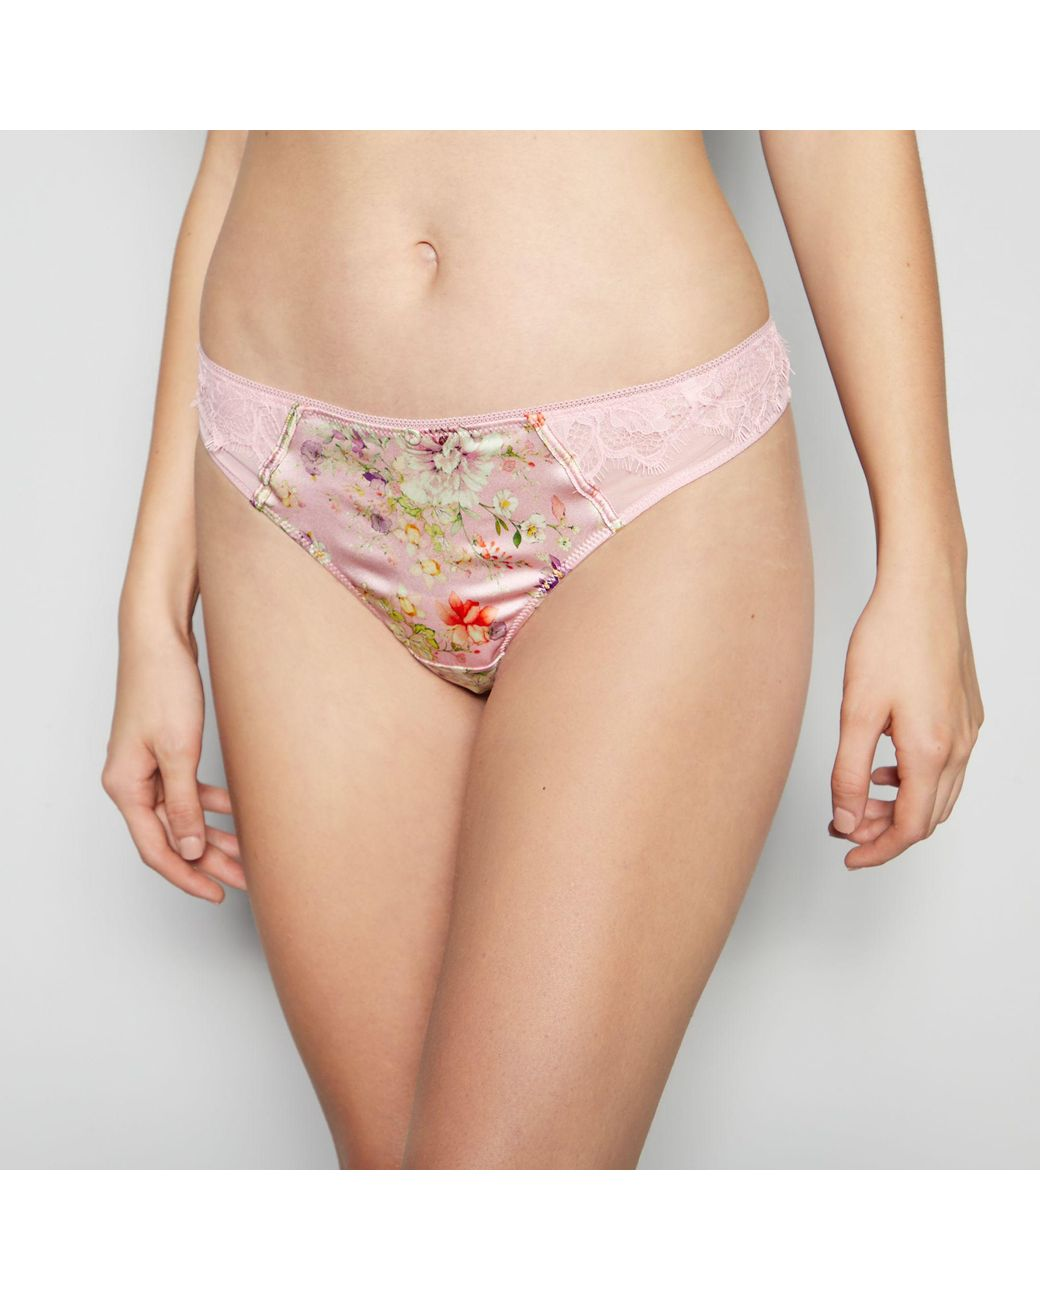 3a072839cb8 Jenny Packham Light Pink Floral Print Thong With Silk in Pink - Lyst